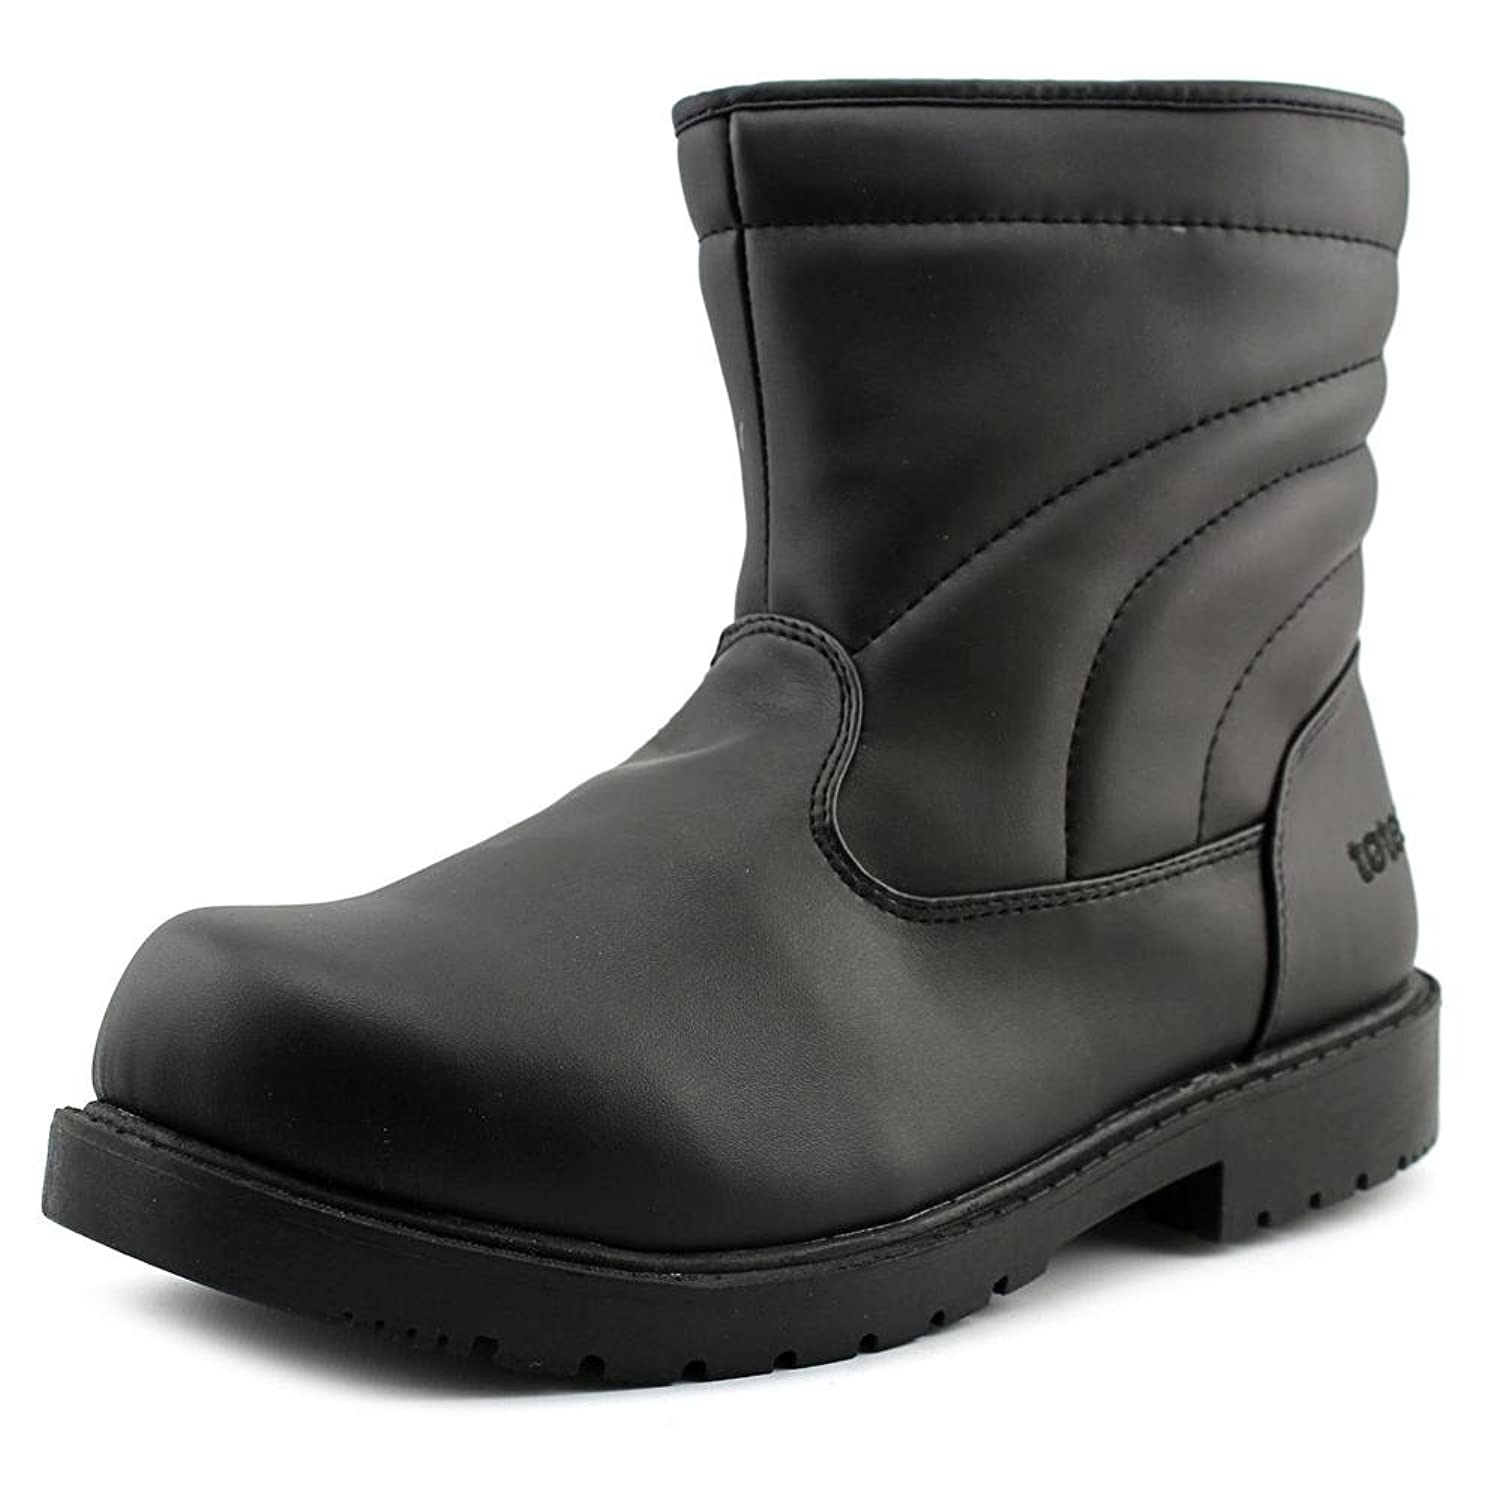 totes mens suburb winter boot black 10m cold weather